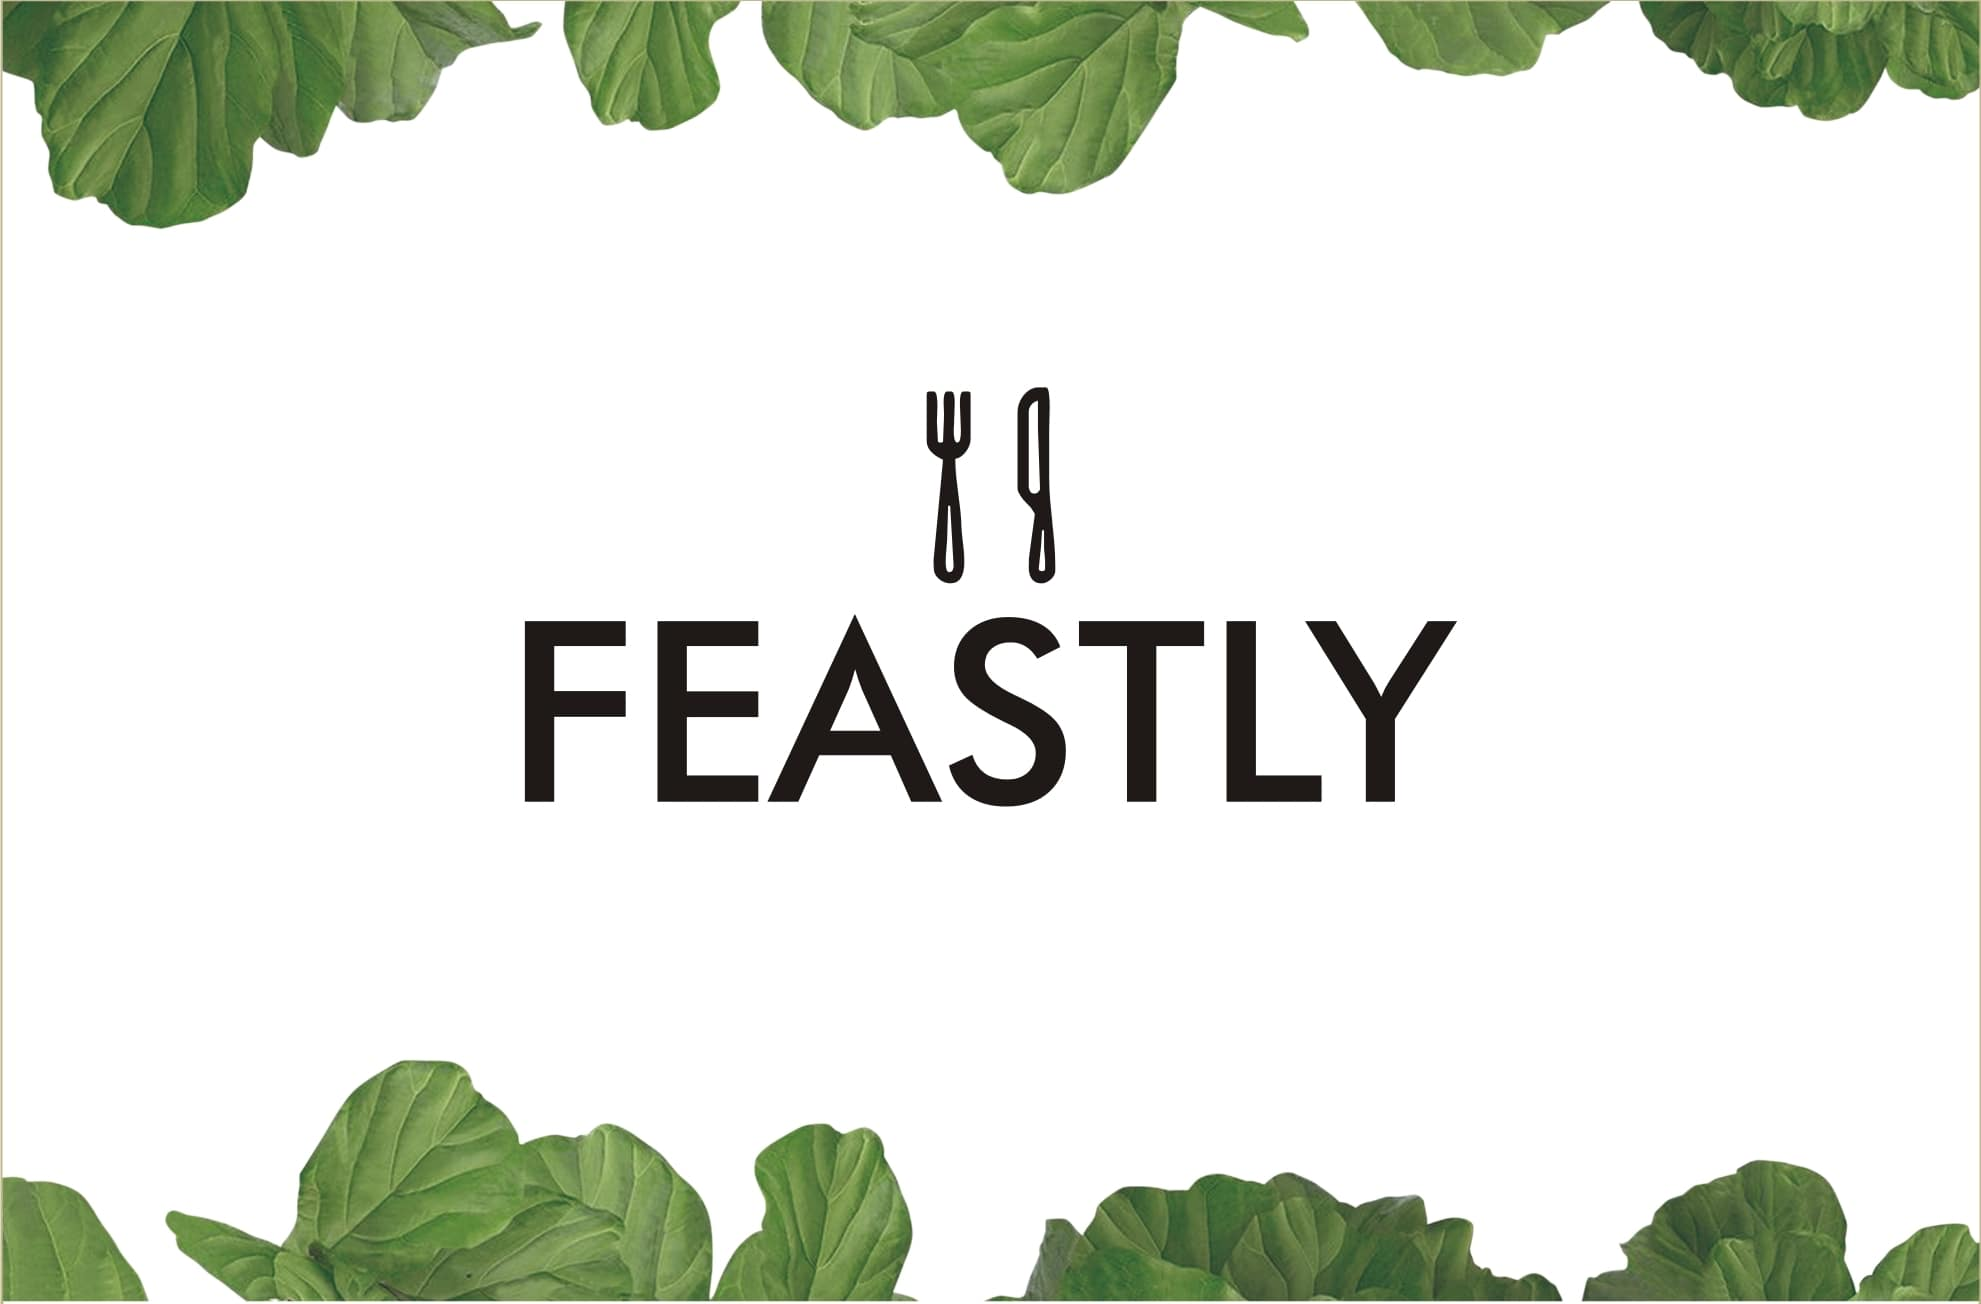 Feastly